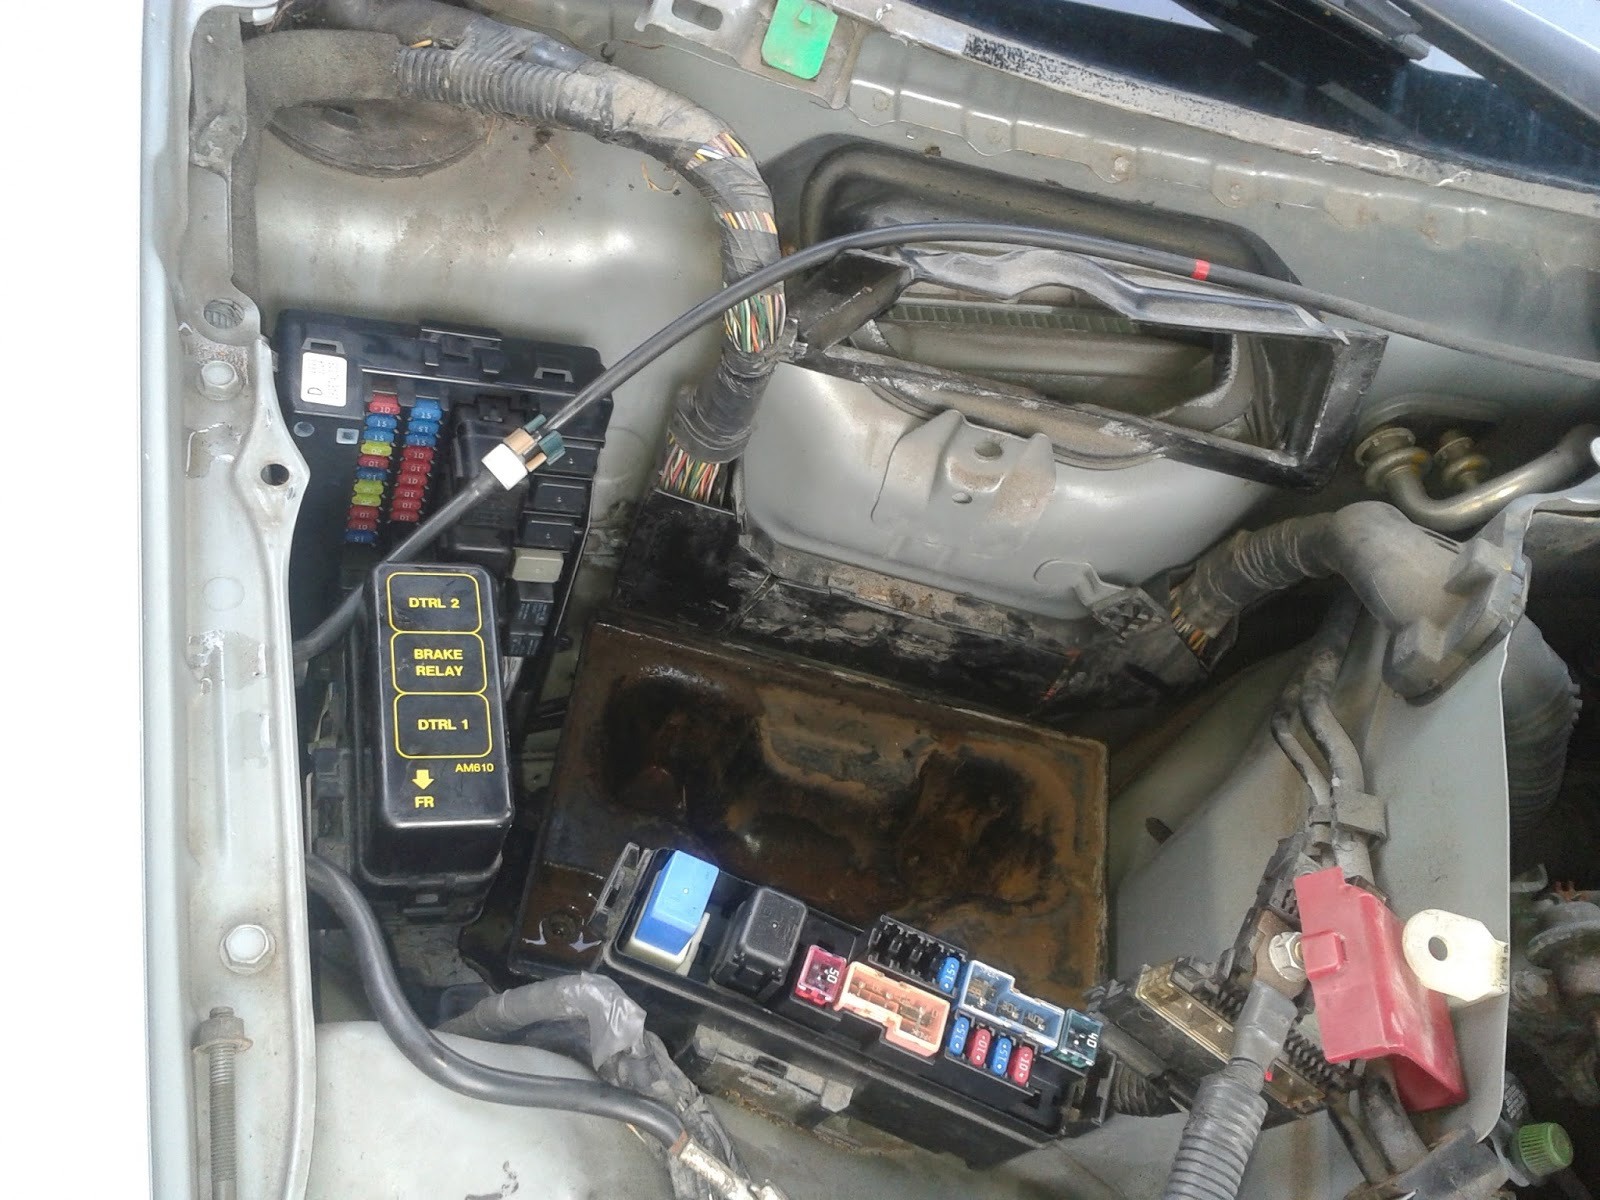 2015 05 27%2B18.55.50 zf inifiniti g35 2003 wet ipdm issue, how to fix it infiniti g35 fuse box diagram at pacquiaovsvargaslive.co